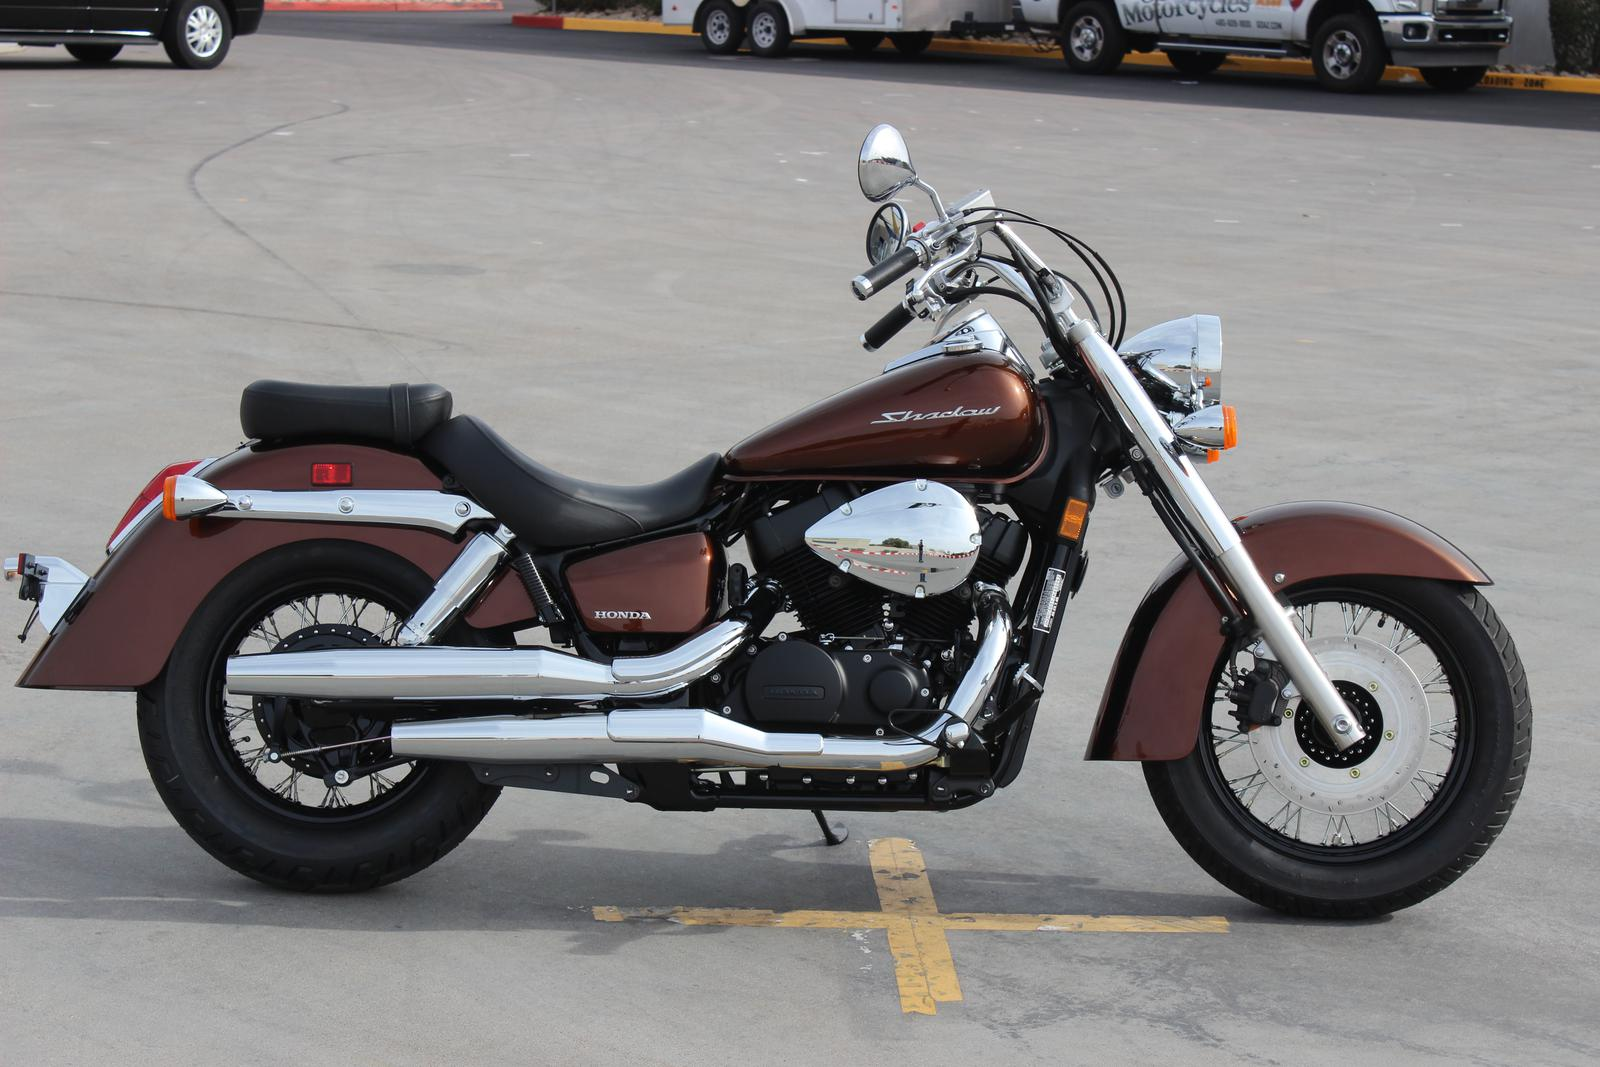 2018 Honda Shadow Aero For Sale In Scottsdale AZ